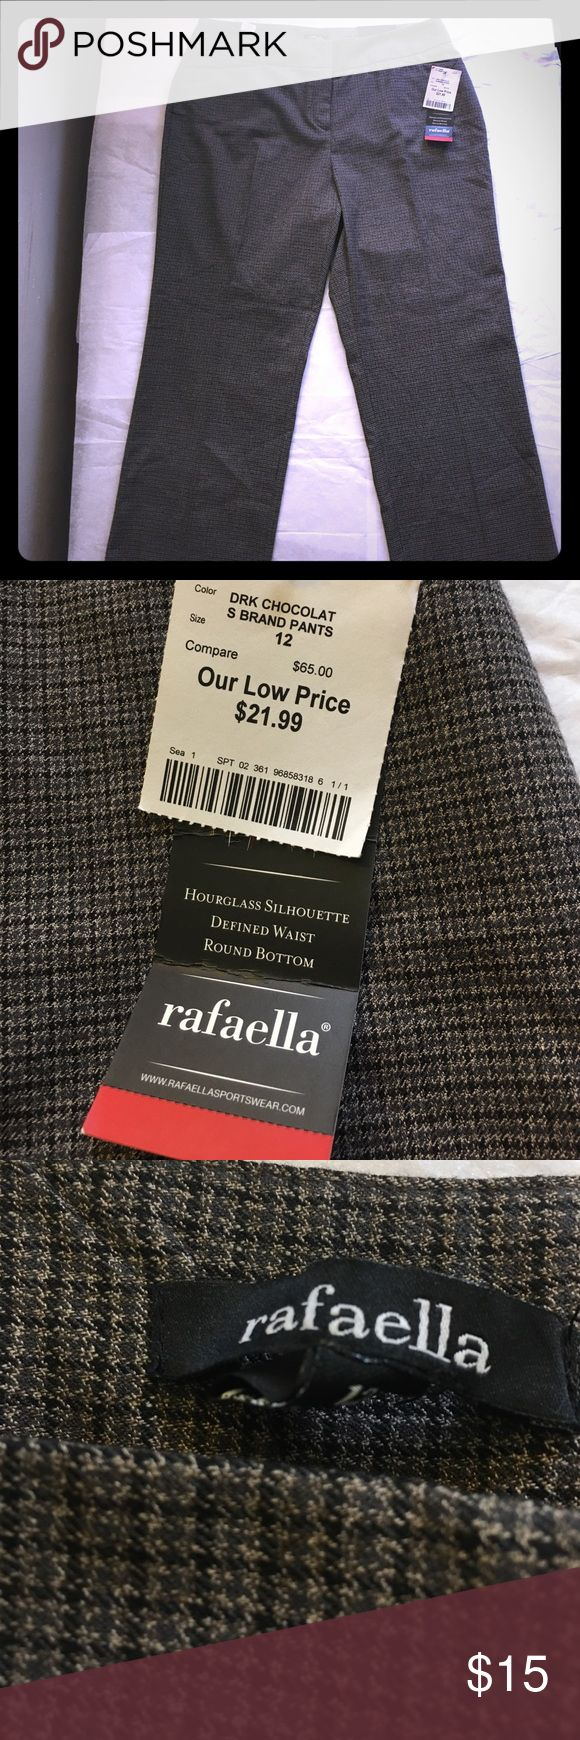 Rafaela chocolate dress pants New with tags Curvy Dress Pant in chocolate all buttons and clasps in tact w/ a defined waist and back pockets Rafaella Pants Trousers